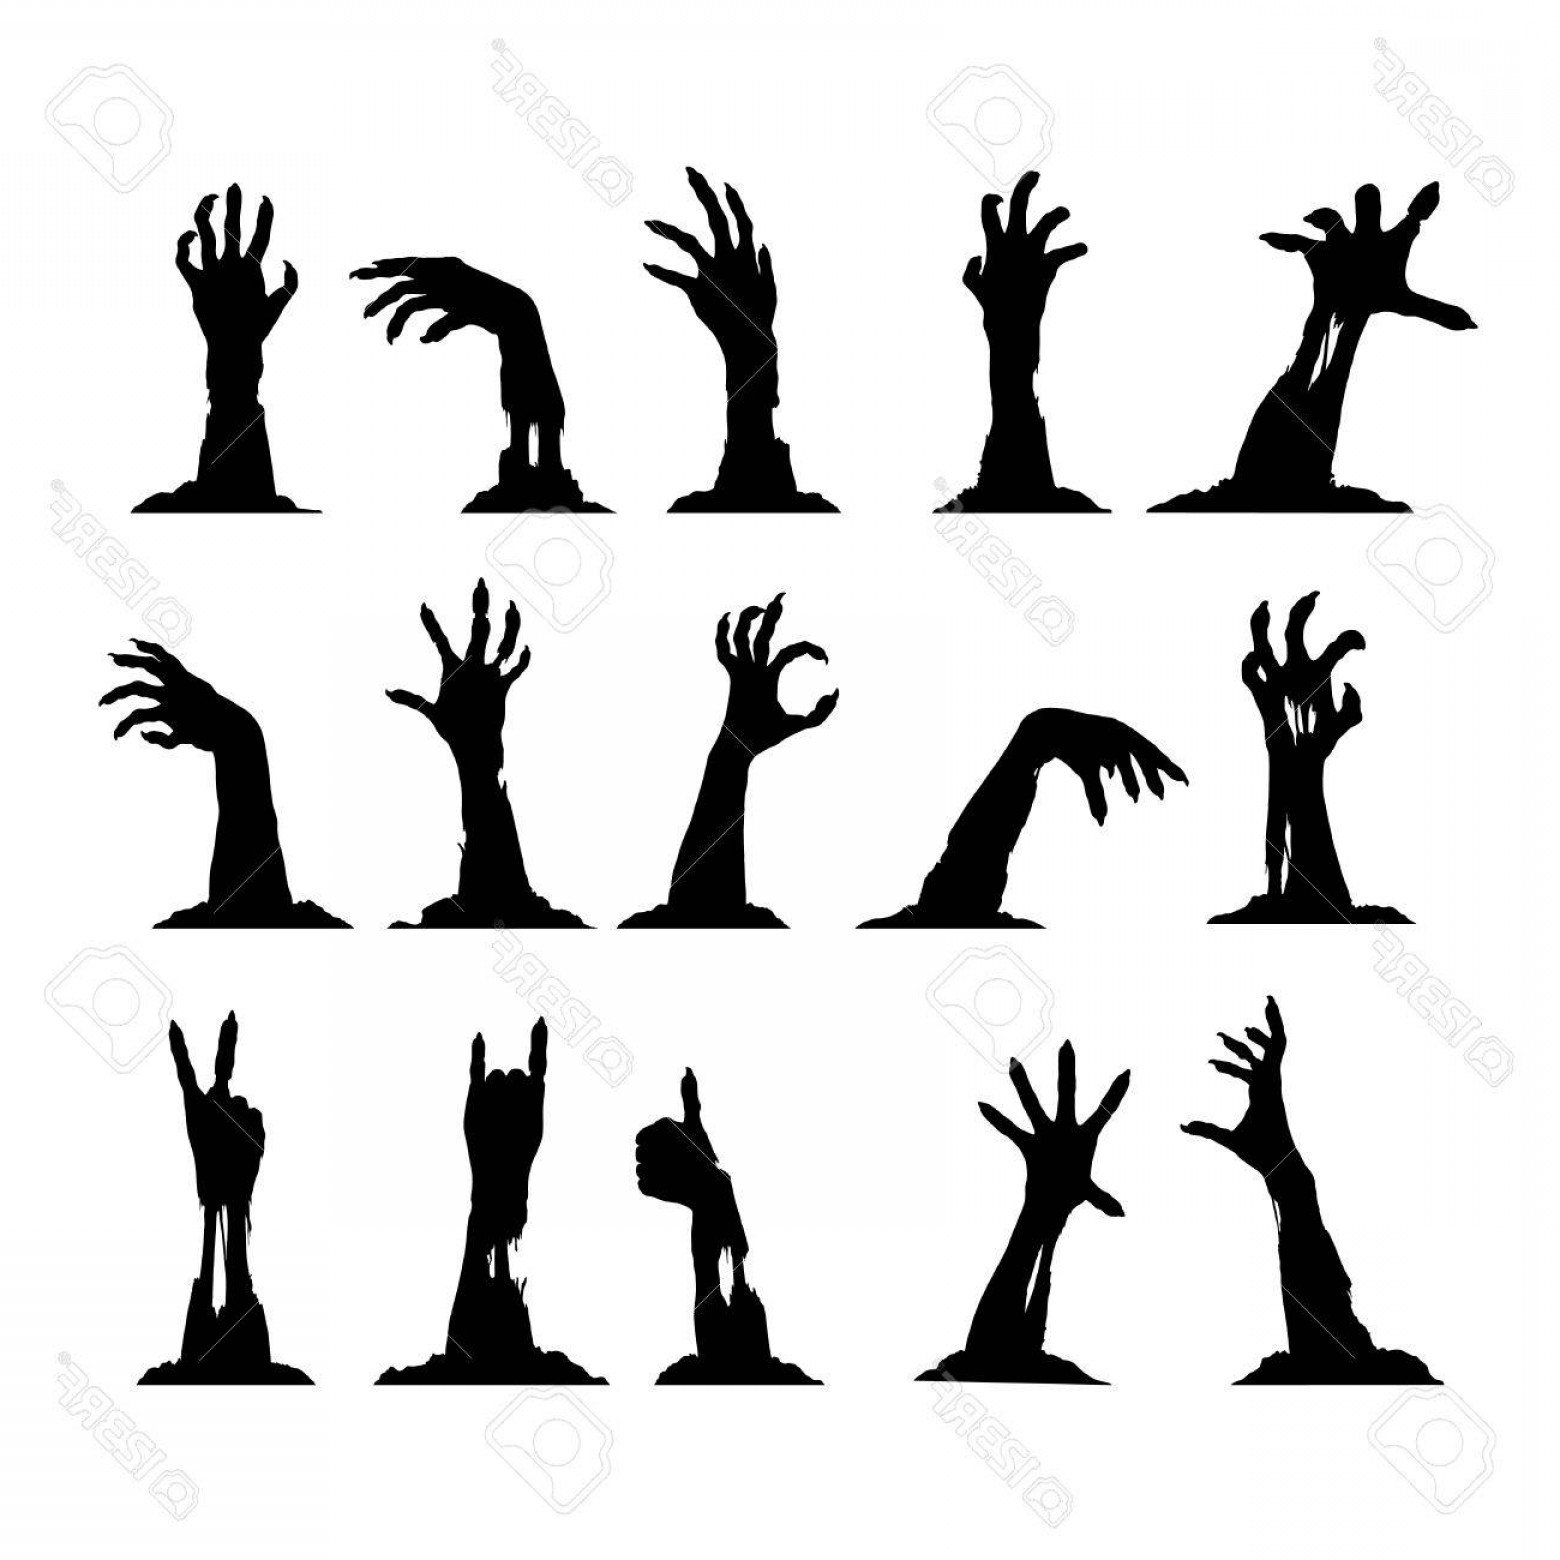 Hand Vector Clip Art: Photostock Vector Set Of Silhouettes Of Zombie Hands Collection For Halloween Themes And Greetings Vector Clip Art Eps